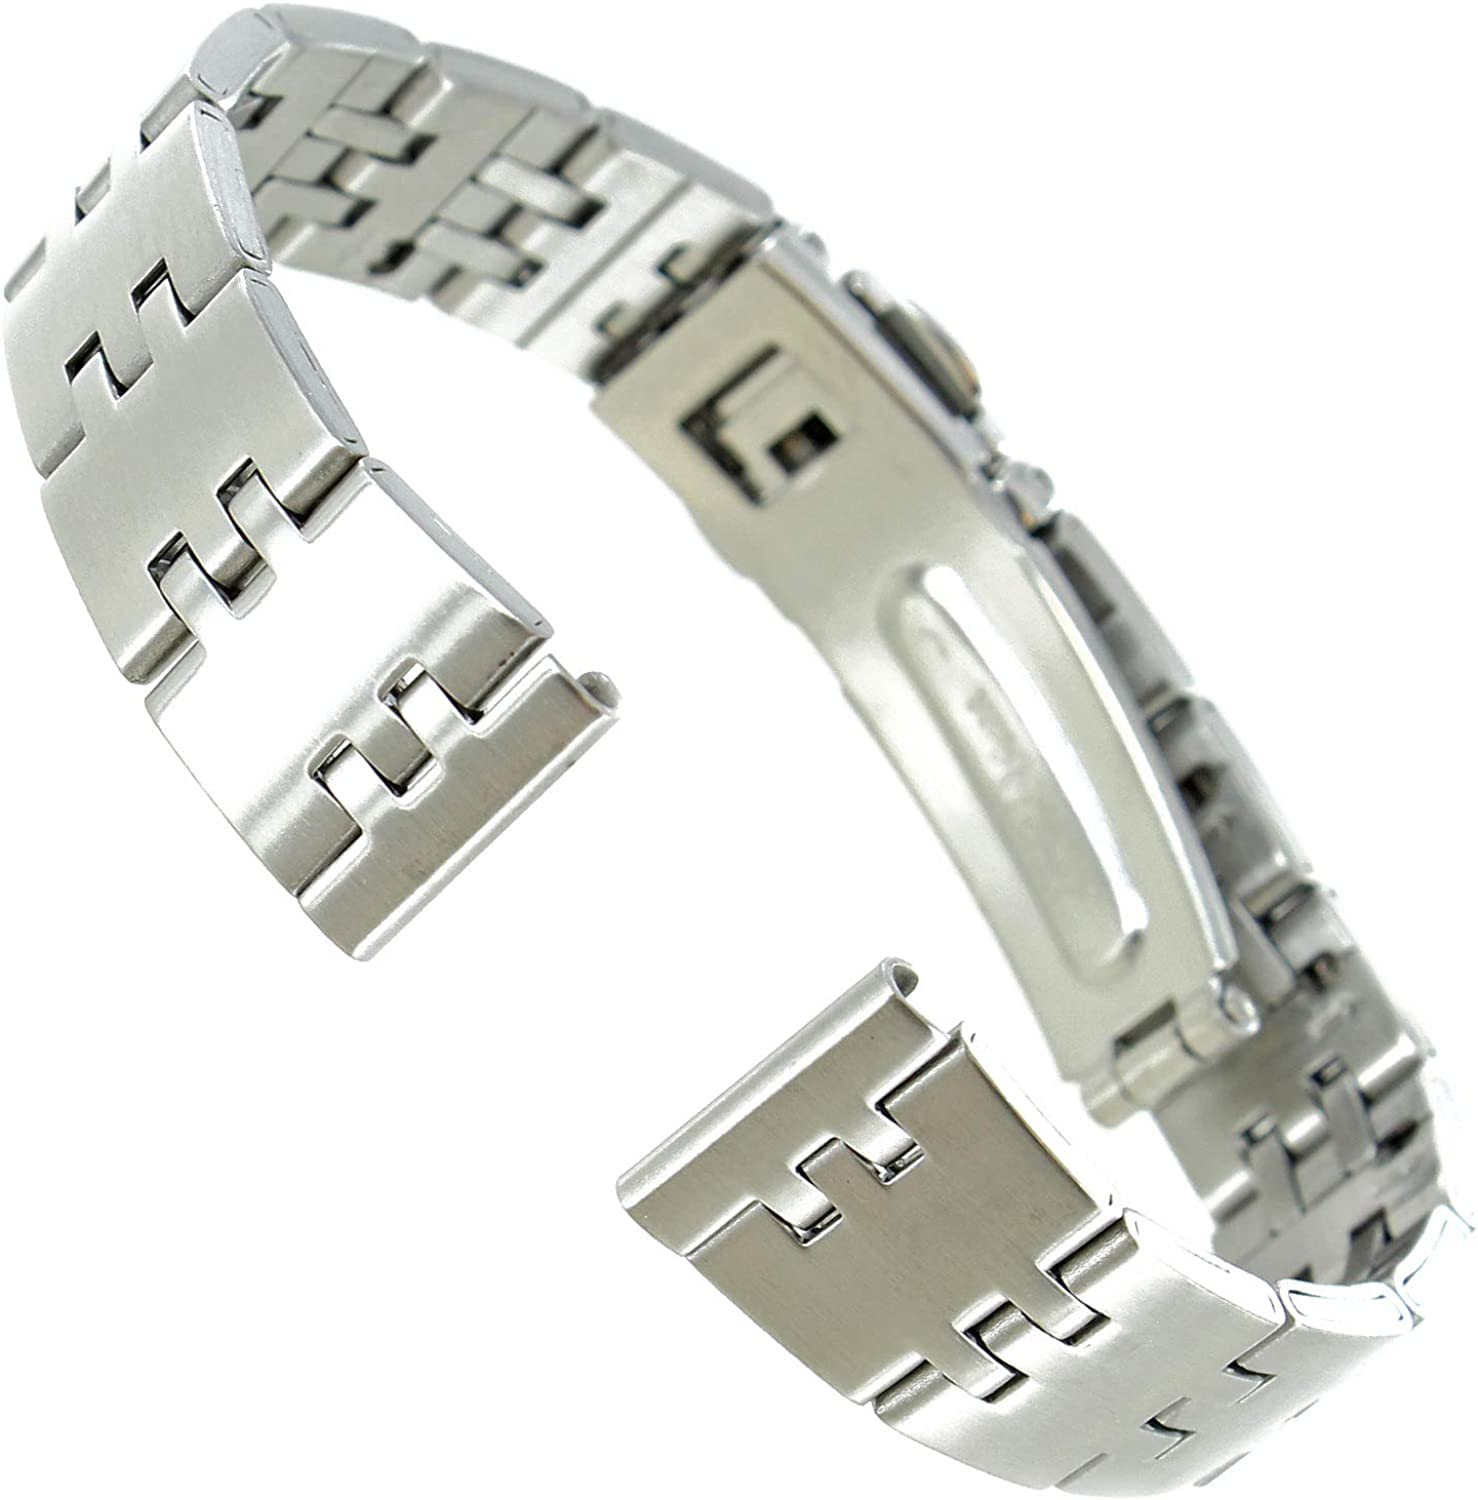 14mm Speidel Solid Puzzle Link Design Band Push Cheap super special price Watch Max 64% OFF Clasp Open